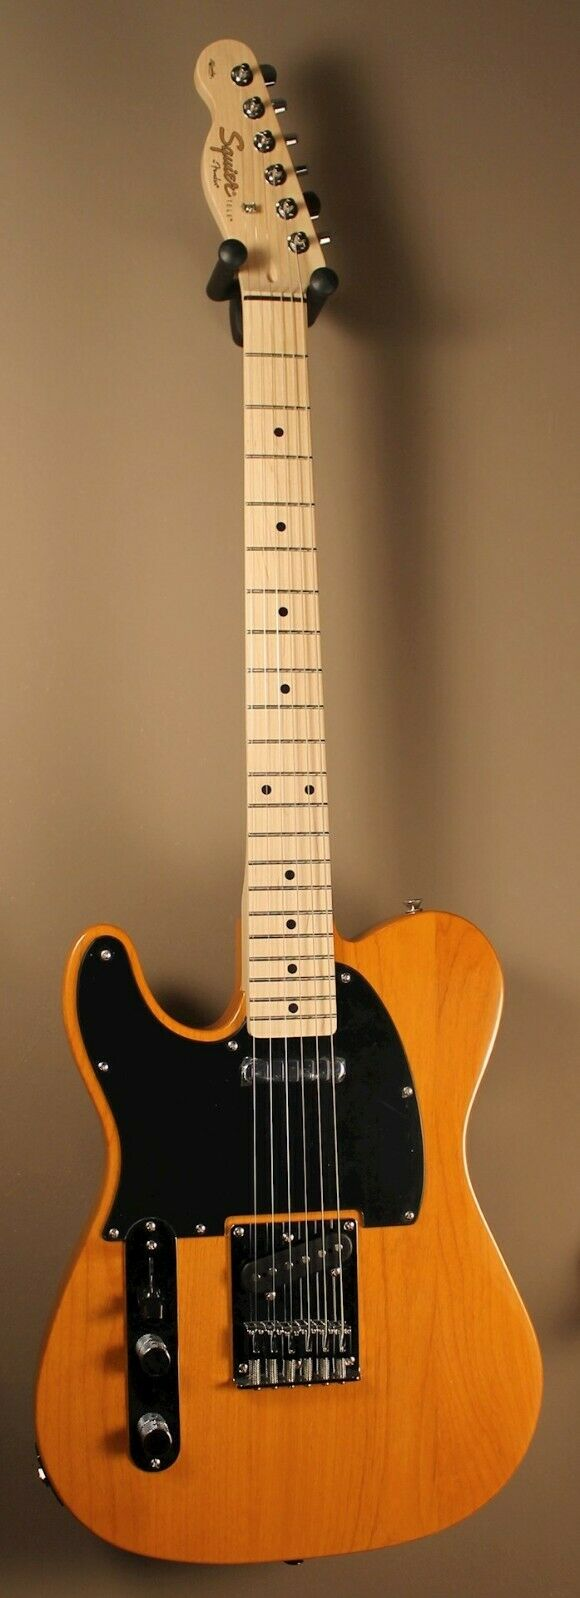 This Squier Telecaster electric guitar is for sale - Squier telecaster affinity Left Handed- Cash payments preferred